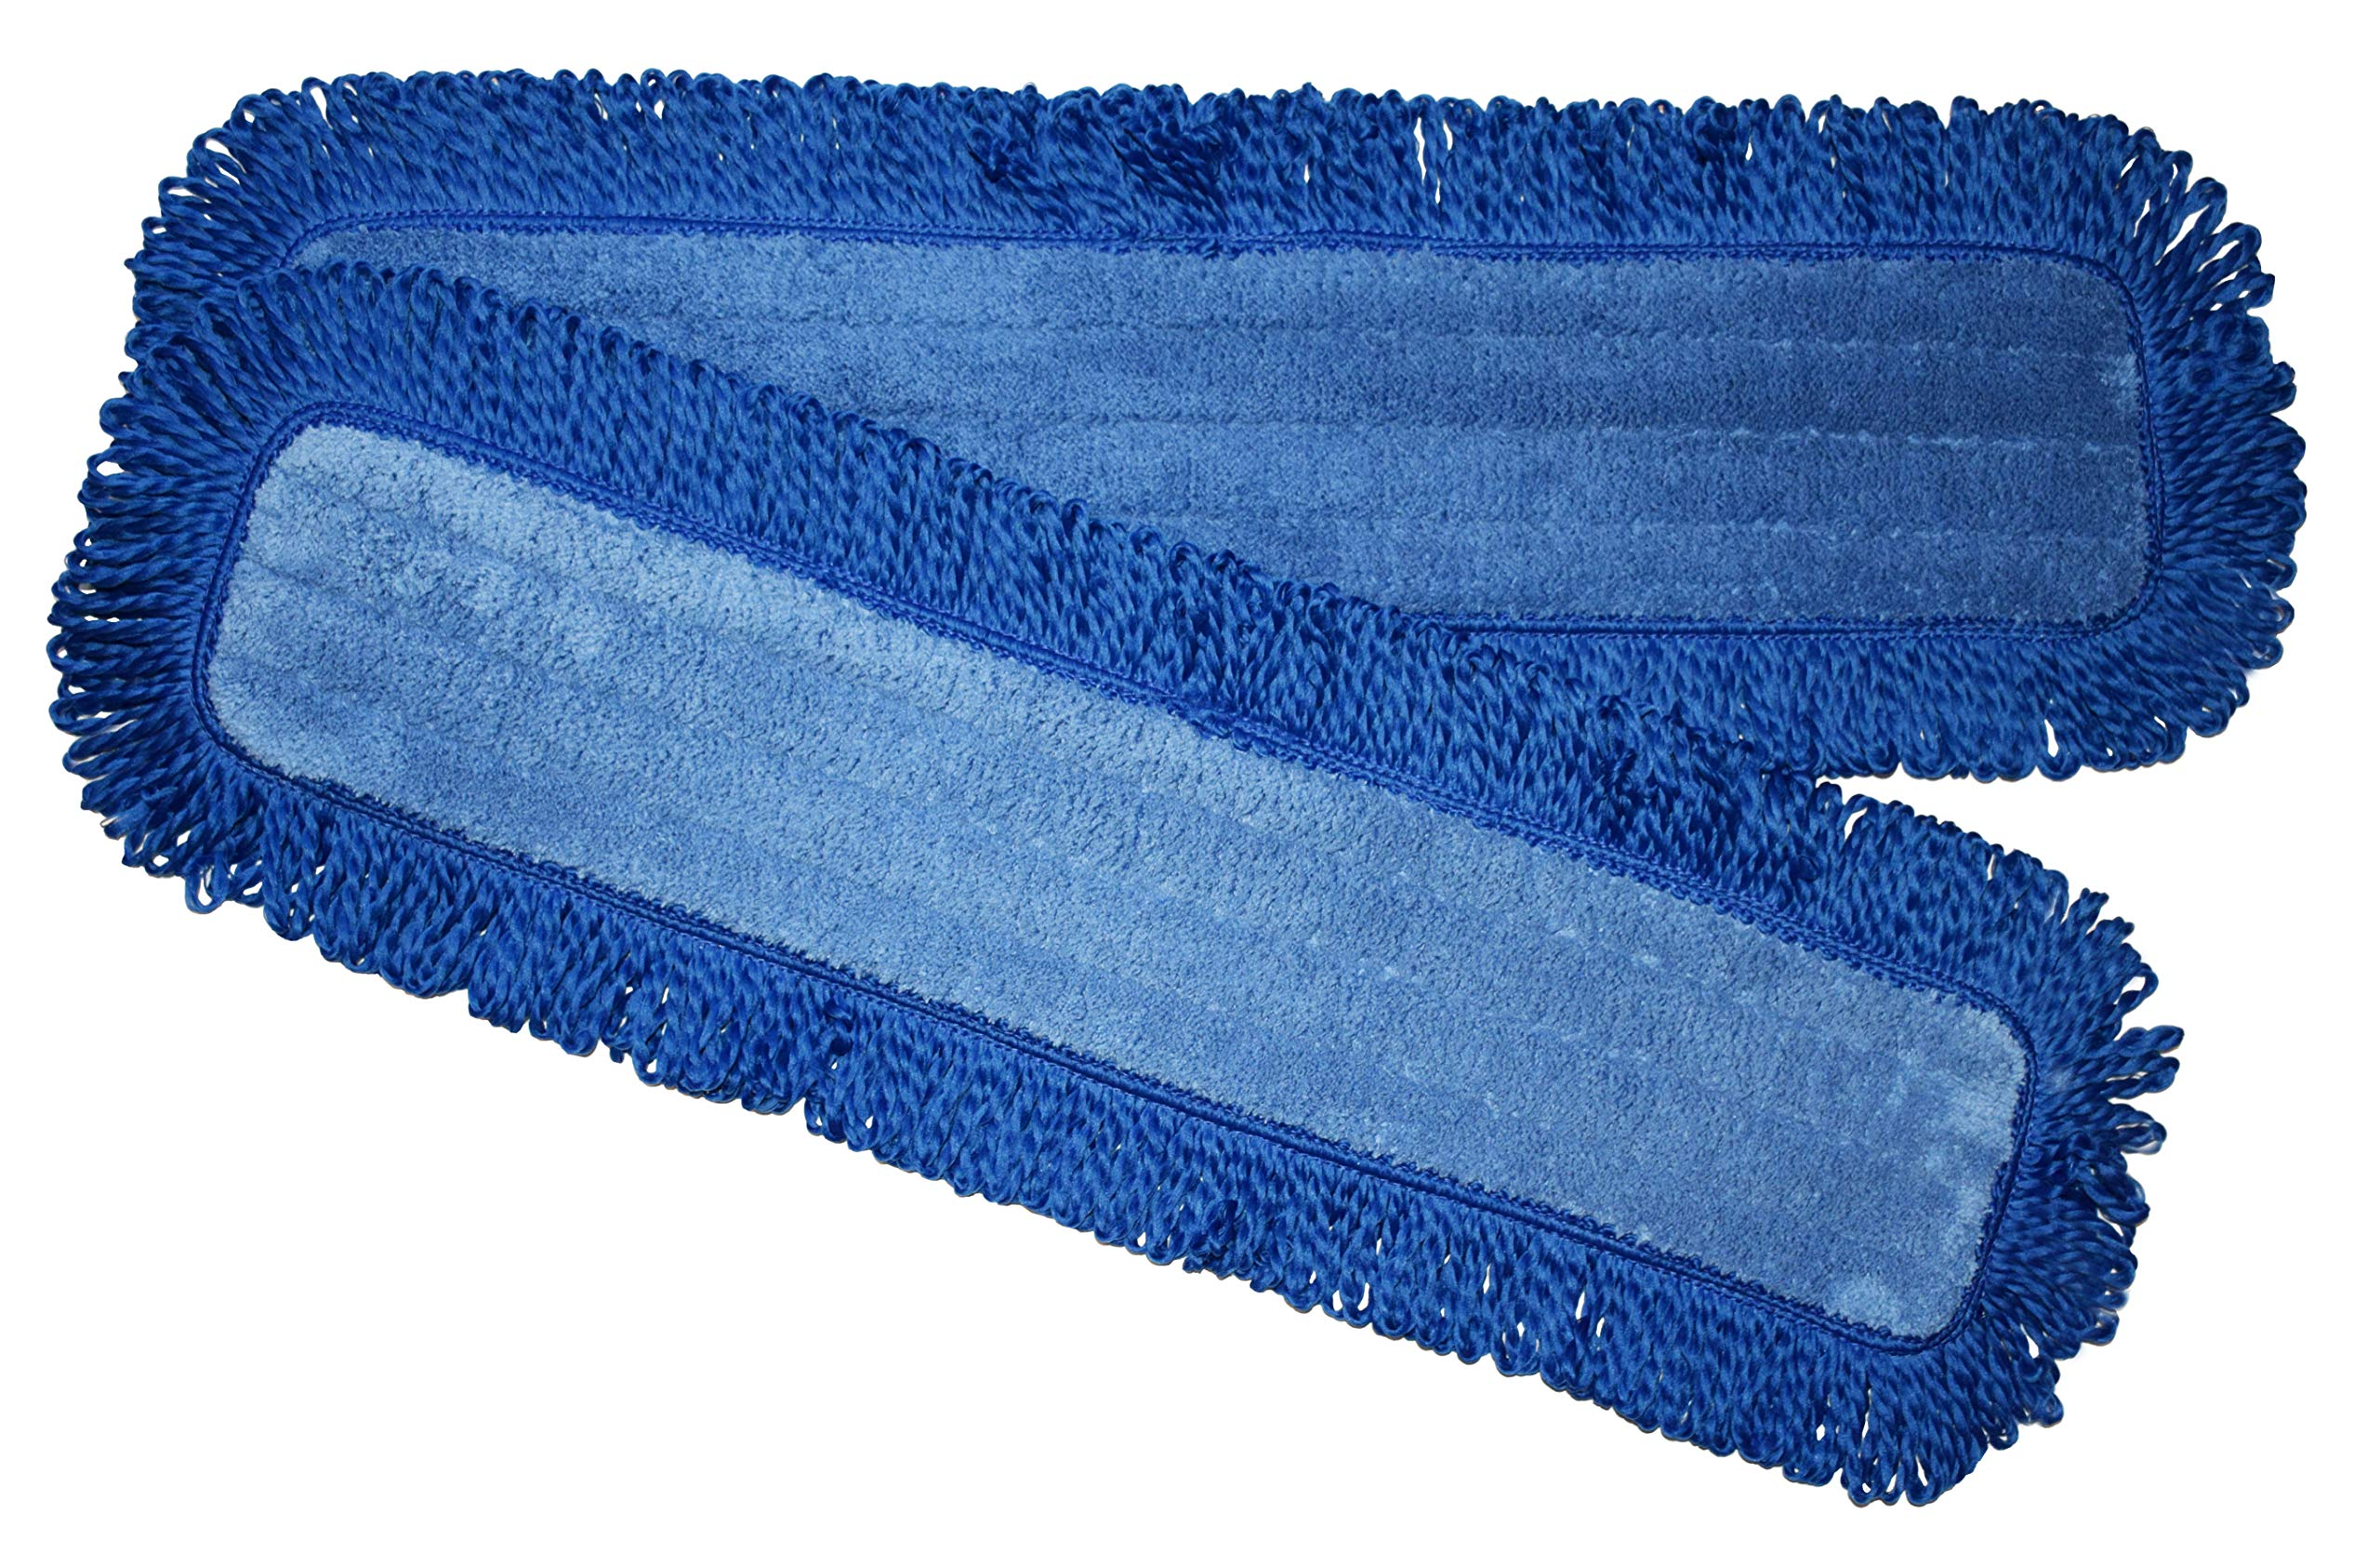 24 Inch Replacement Mop Pads with Fringe, 2 Pack, Microfiber, Professional Grade, by IdaSmart. Fits Any 24 Inch Velcro Style Mop Head, for Dry or Dust Mopping. by IdaSmart